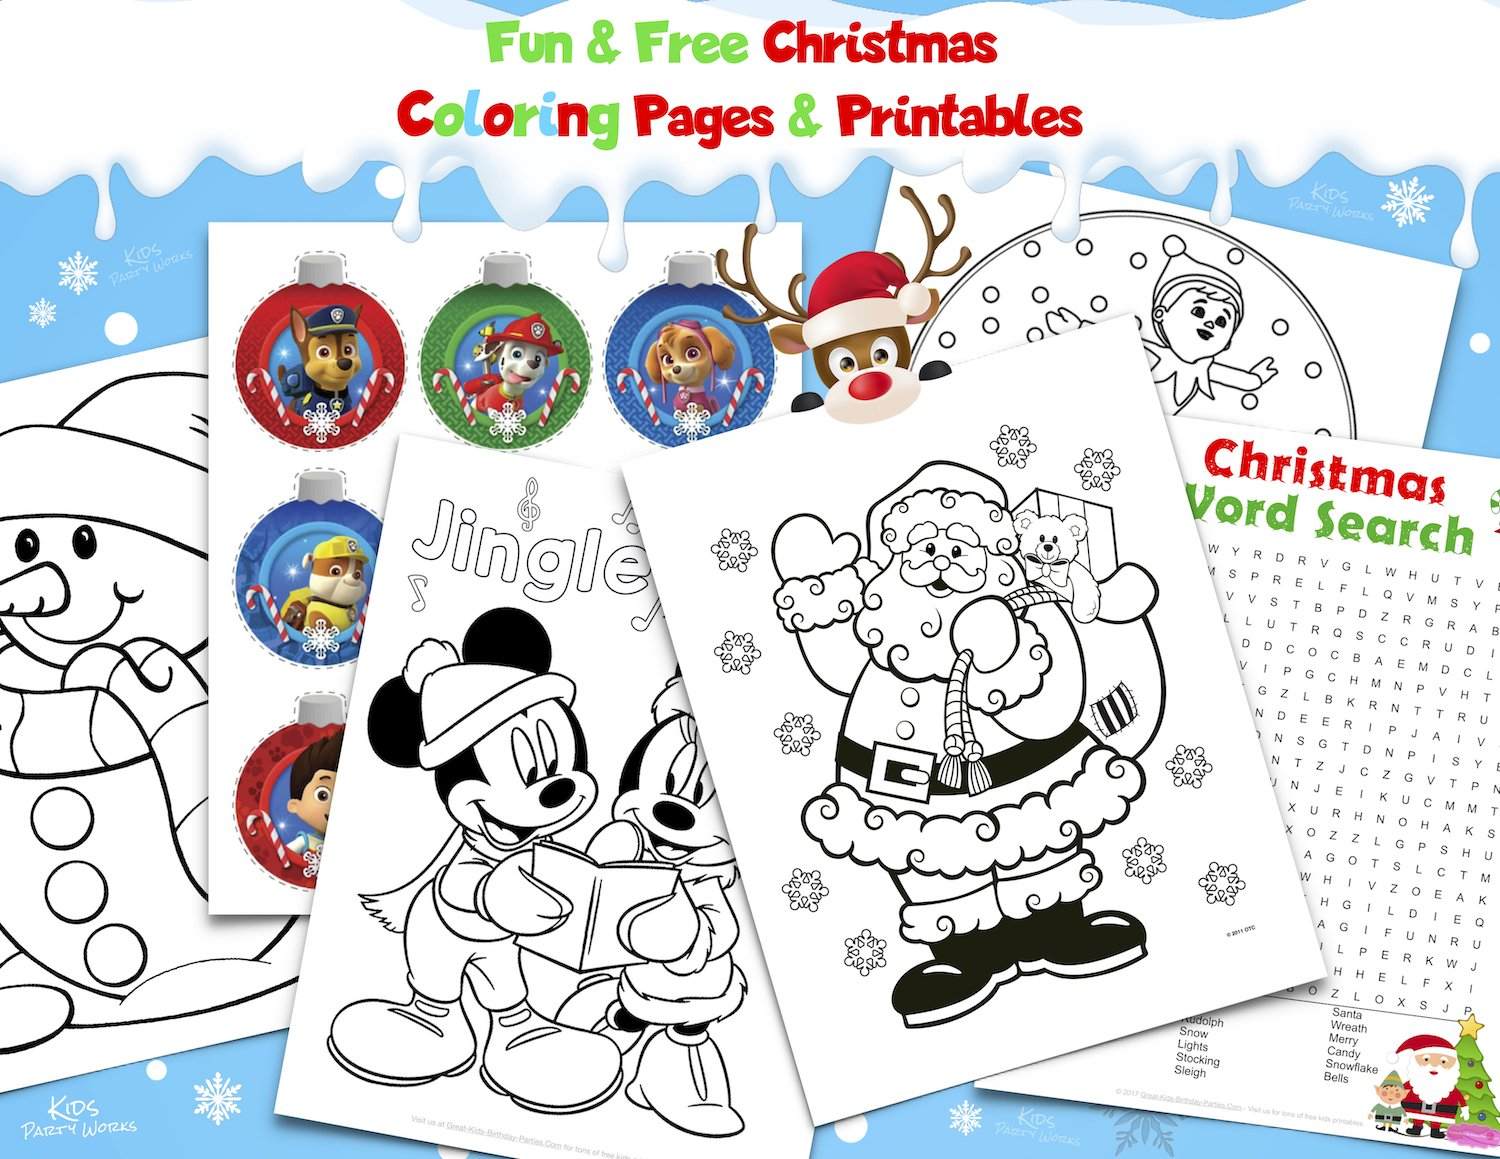 free Christmas coloring pages and printables